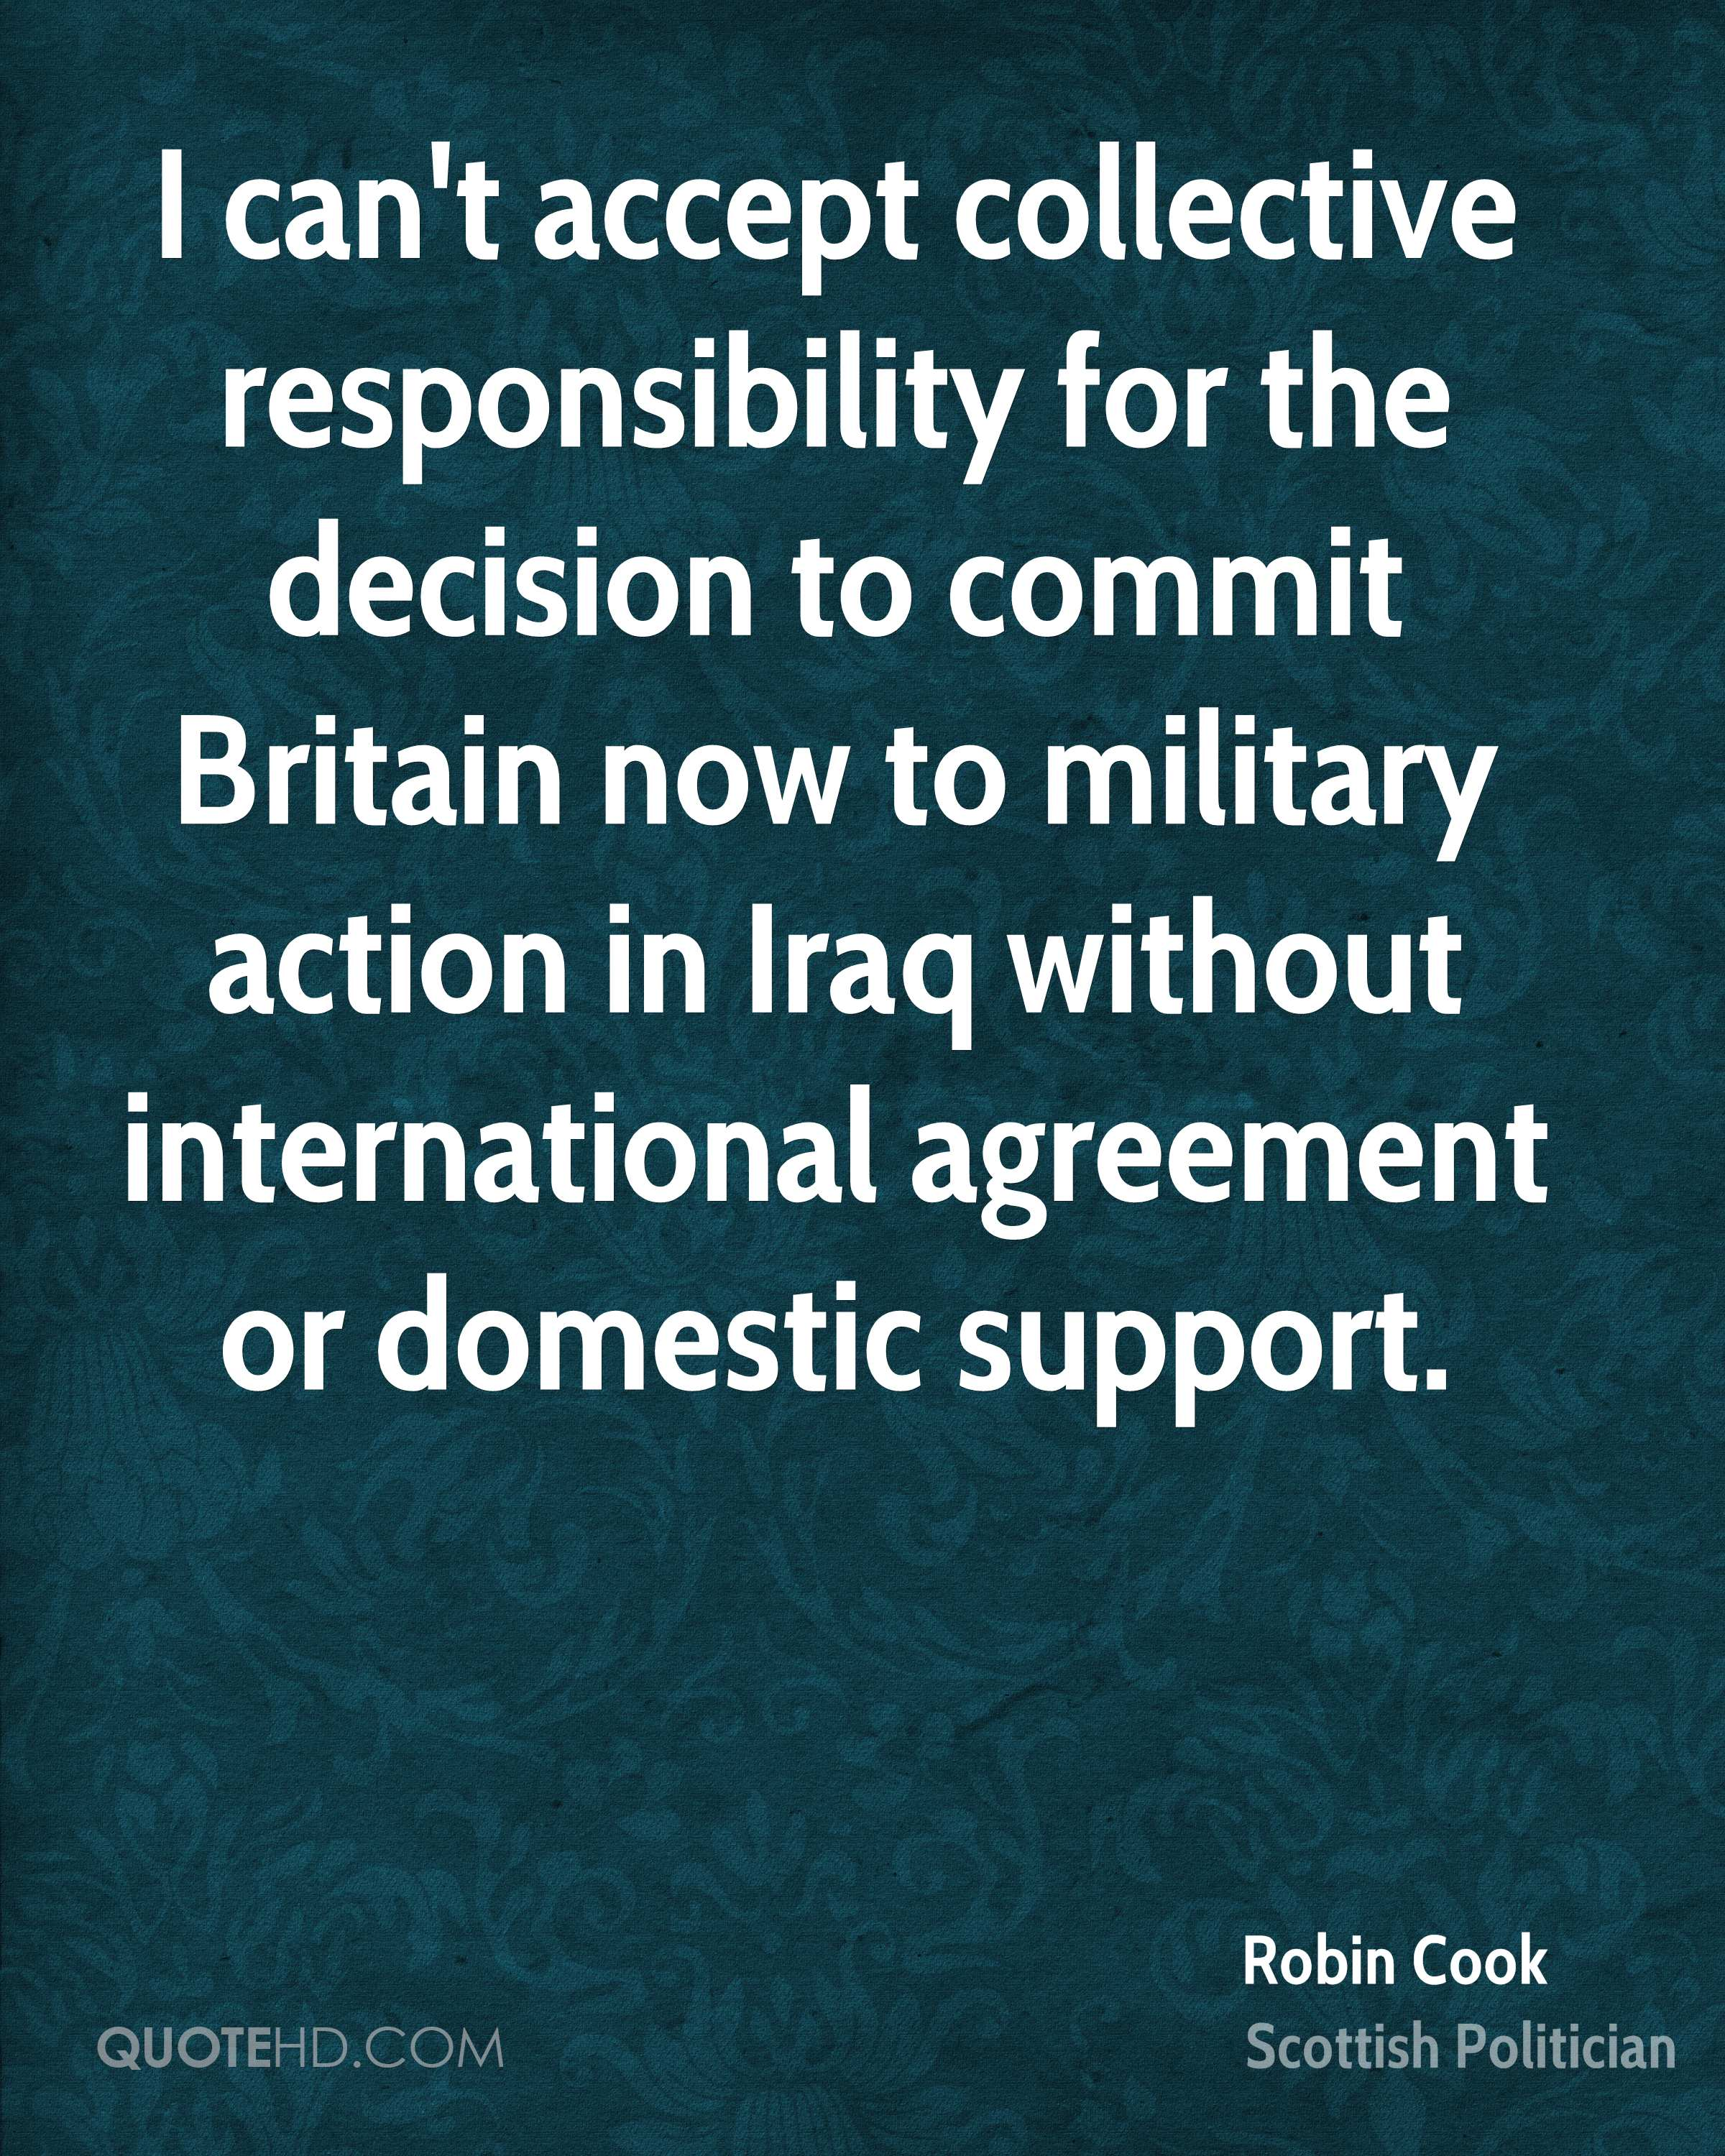 I can't accept collective responsibility for the decision to commit Britain now to military action in Iraq without international agreement or domestic support.